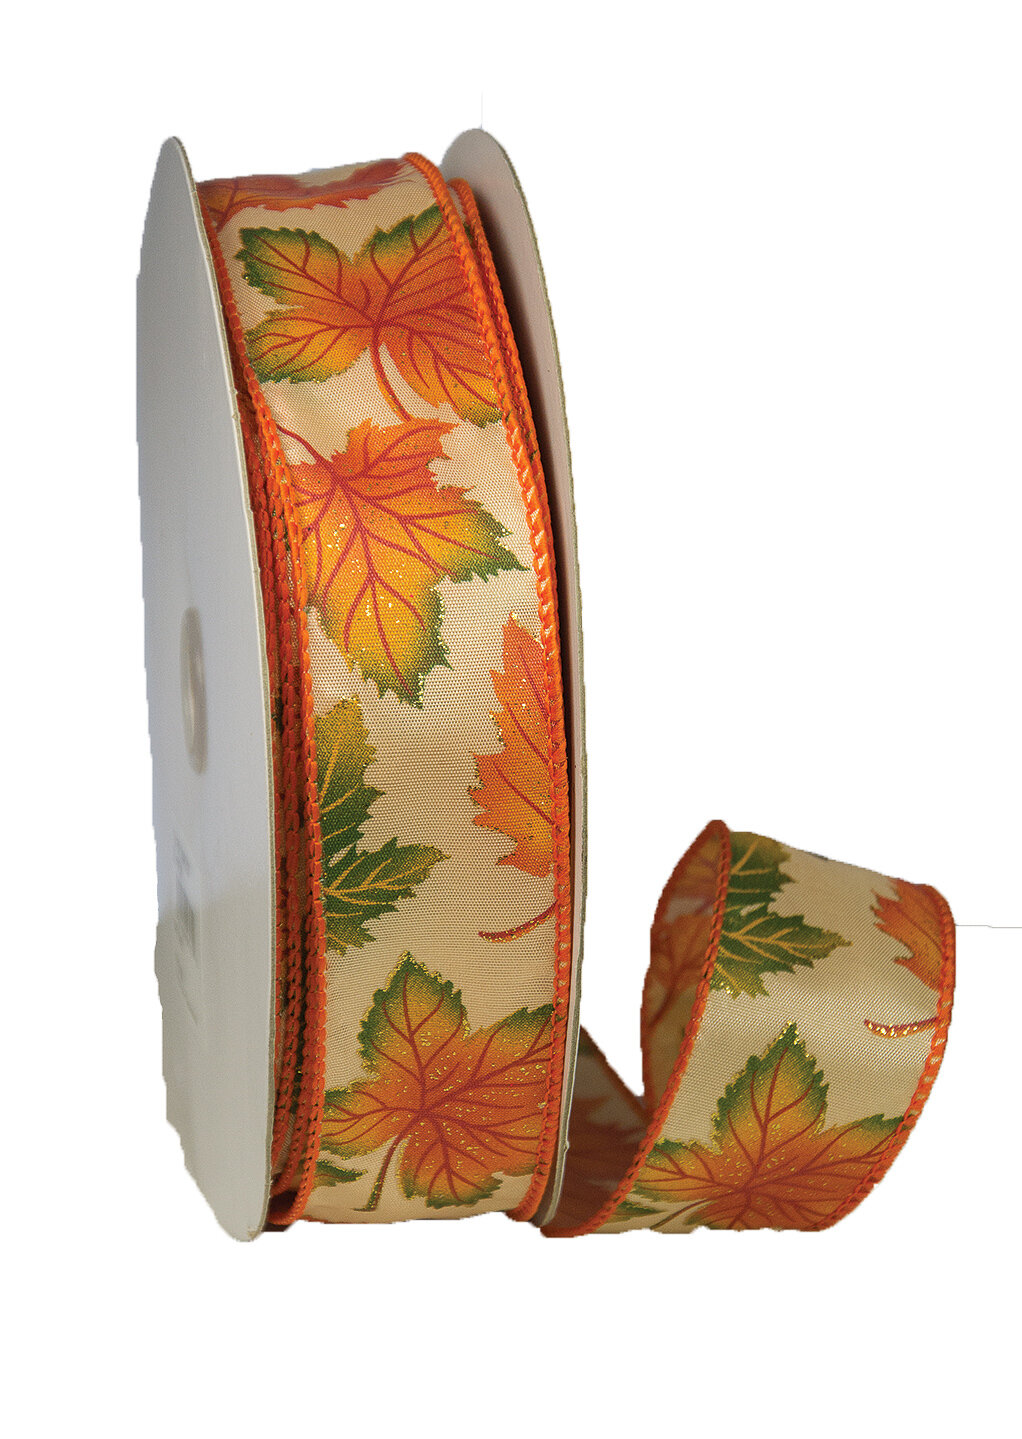 MAPLF9 - #9 Wired Sparkle maple leaf ribbon